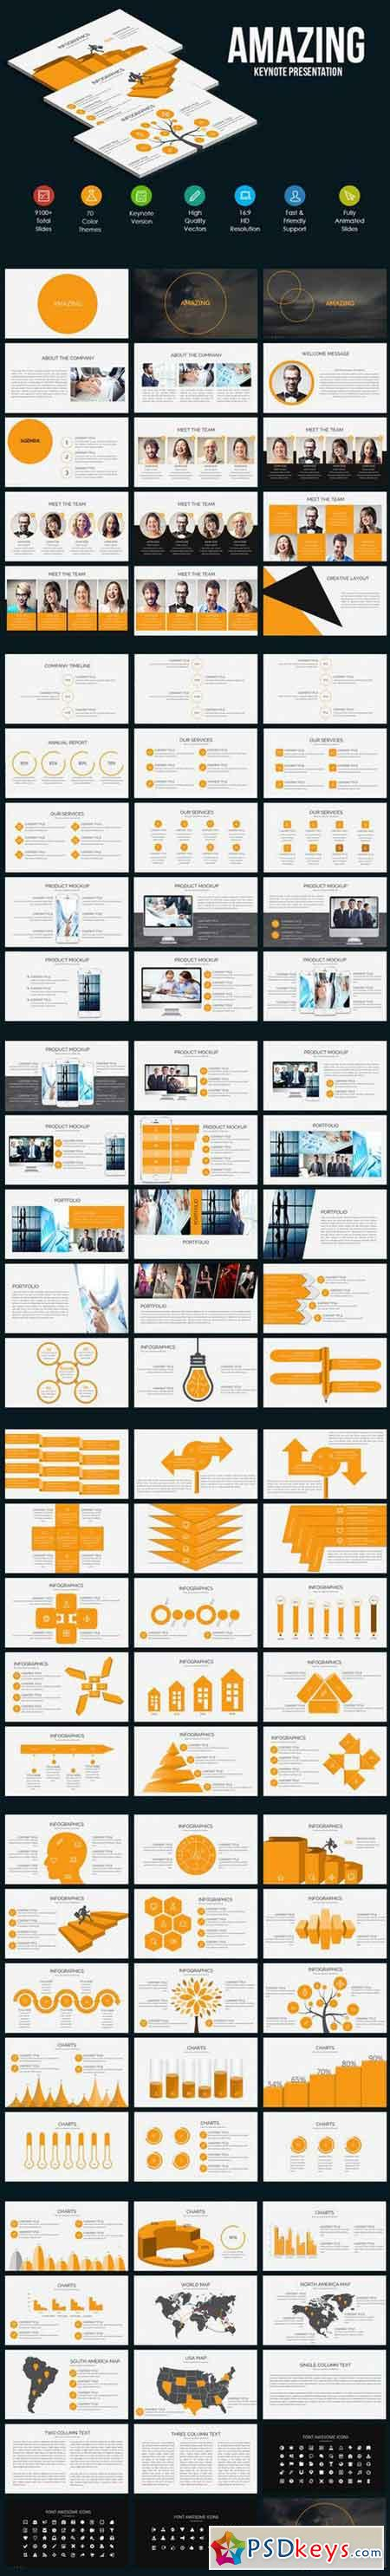 Amazing Keynote Template 896651